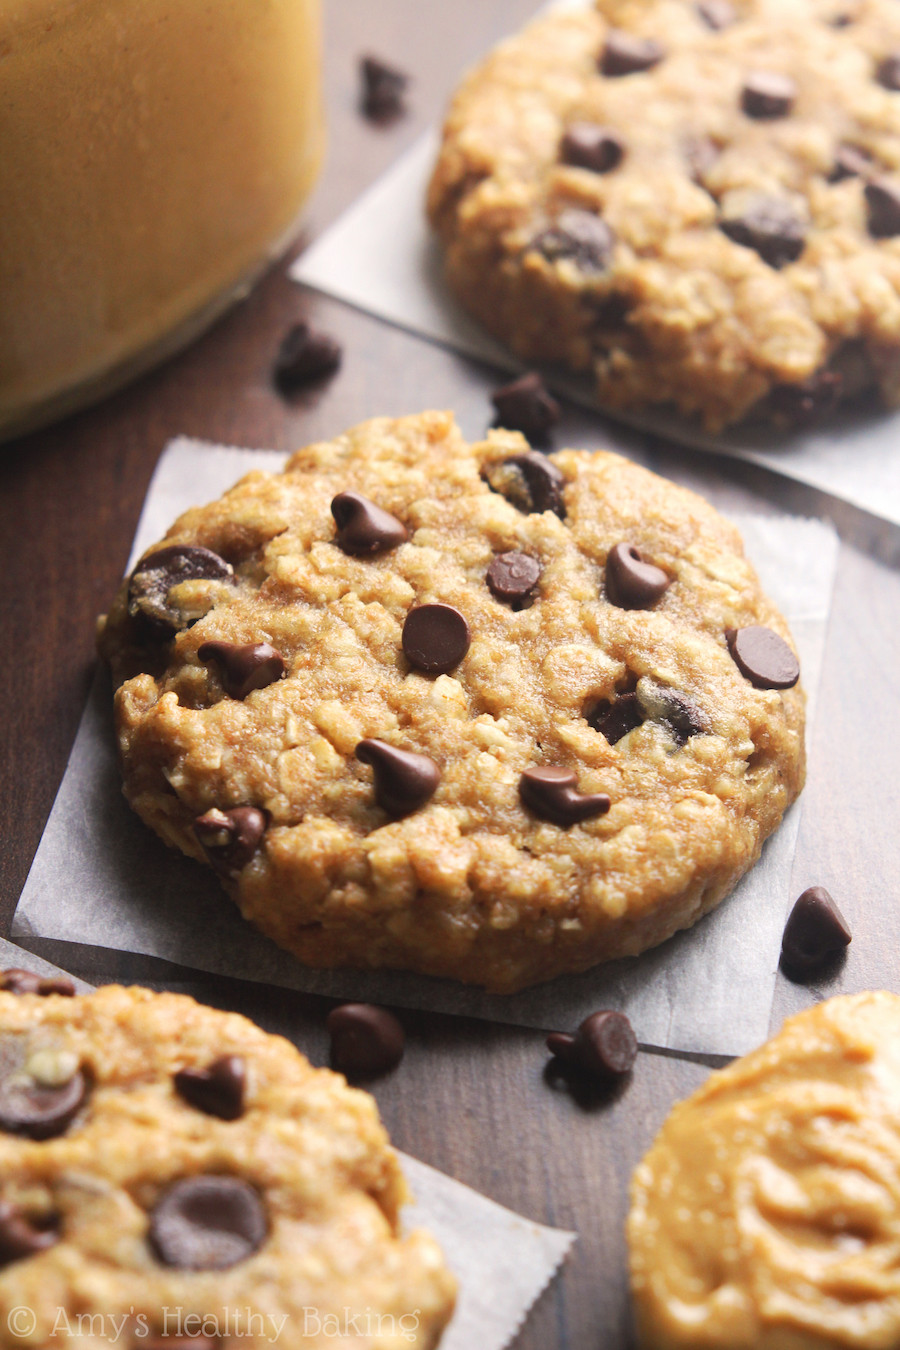 Healthy Peanut Butter Chocolate Chip Cookies  Chocolate Chip Peanut Butter Oatmeal Cookies Recipe Video